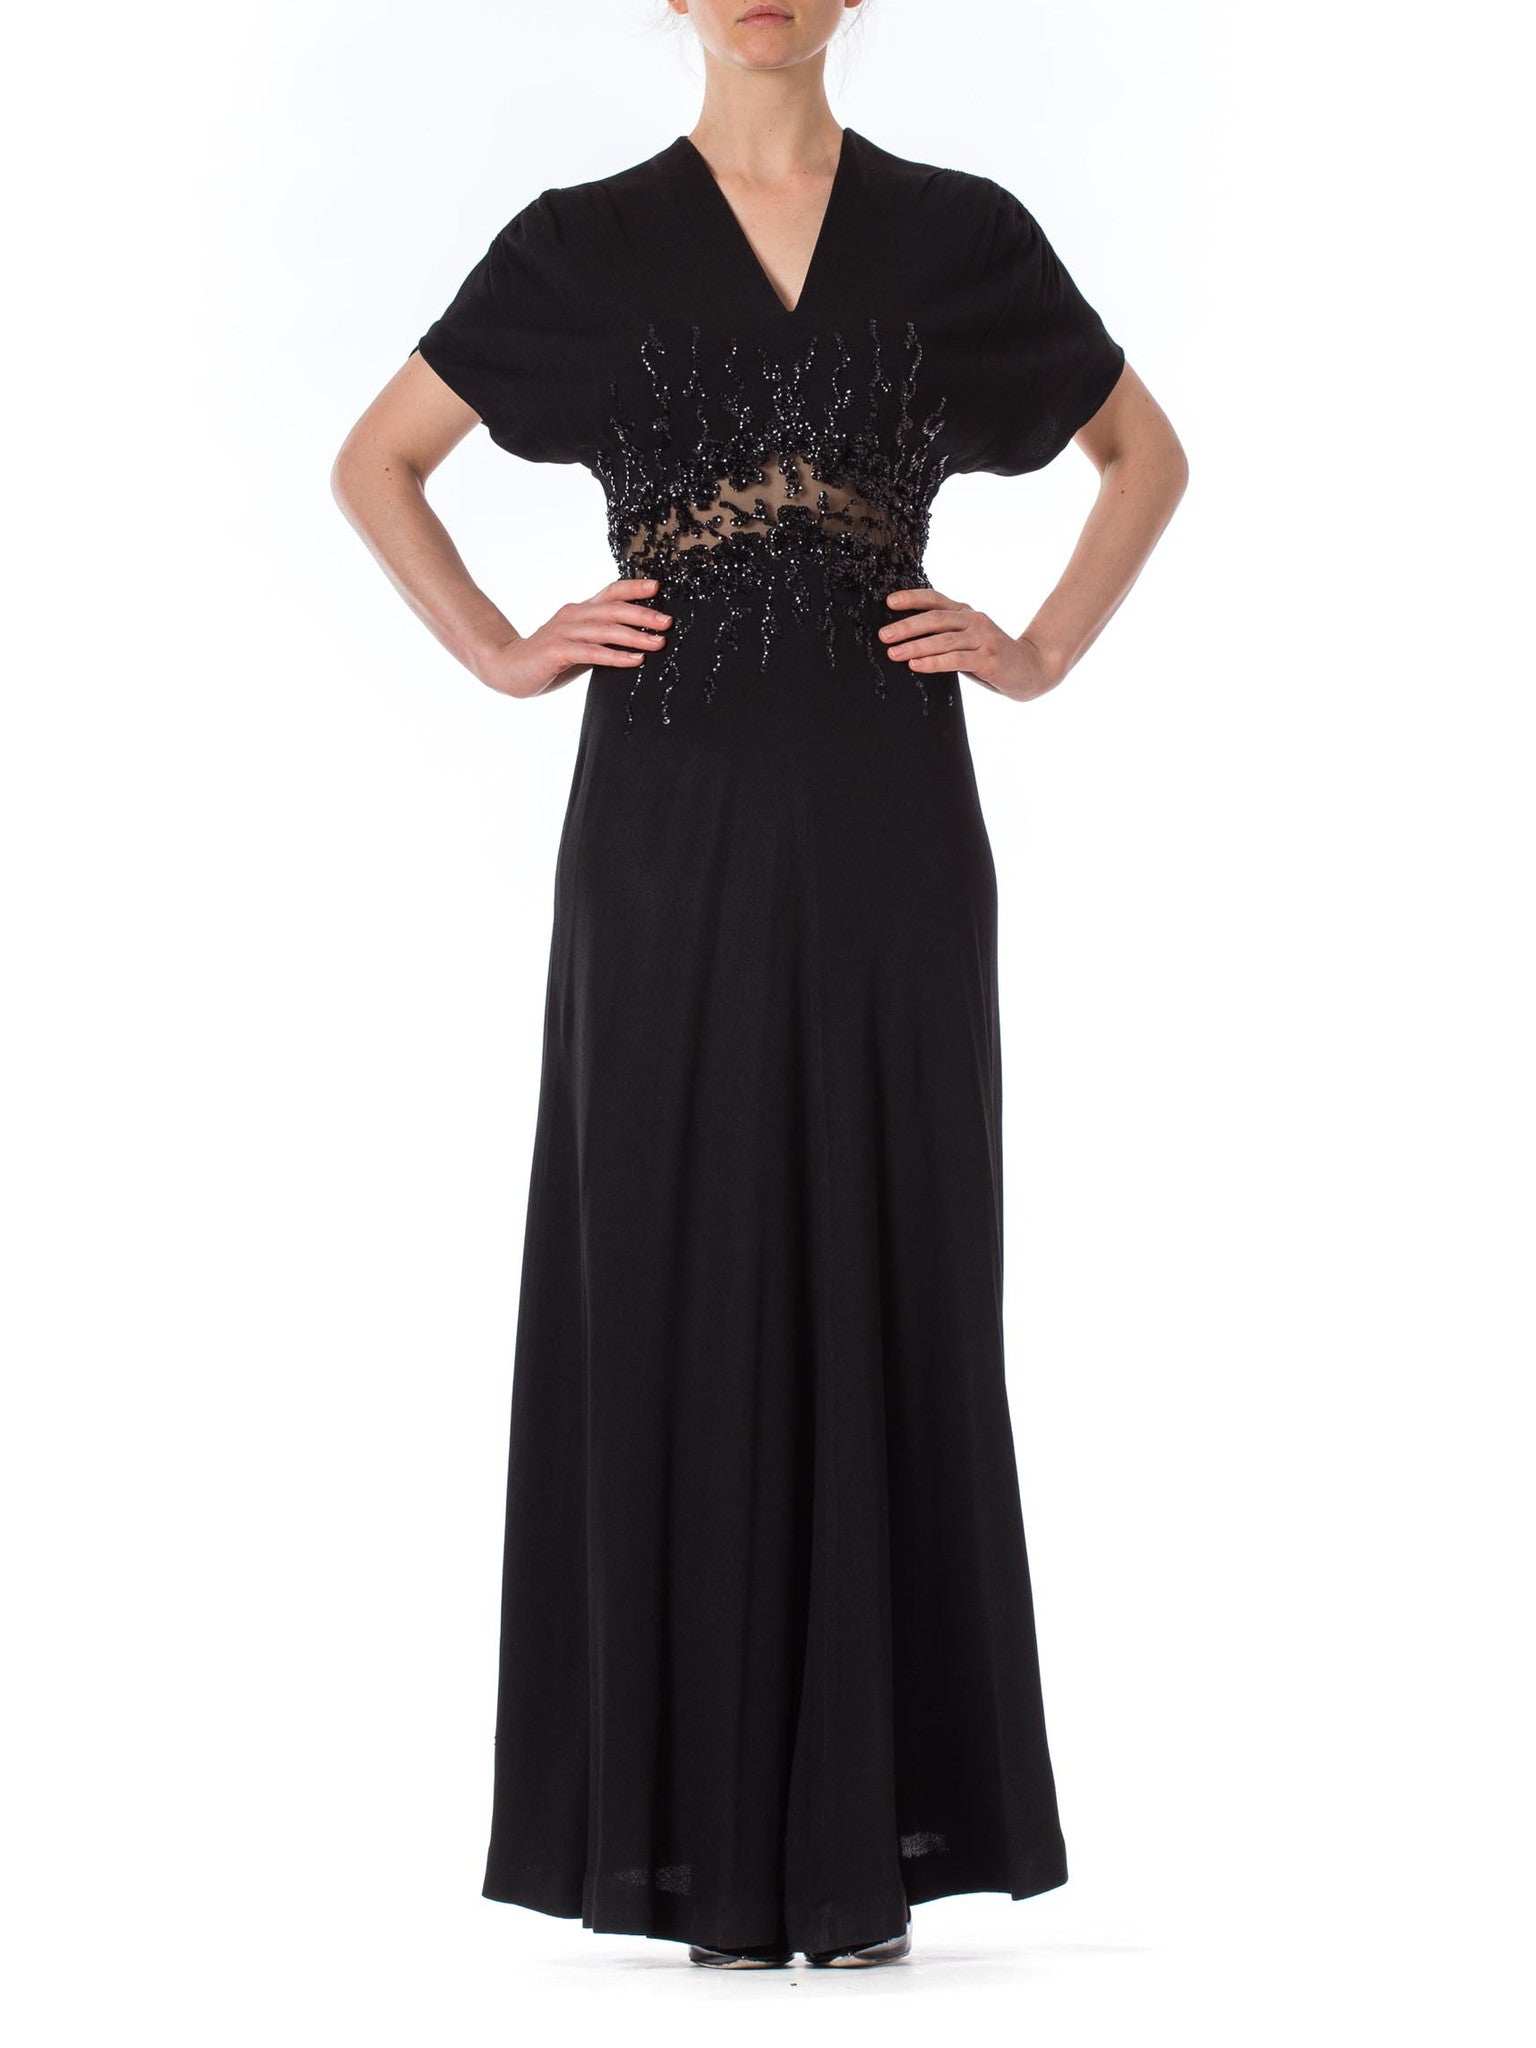 Sequined Jean Carol 1930s Gown